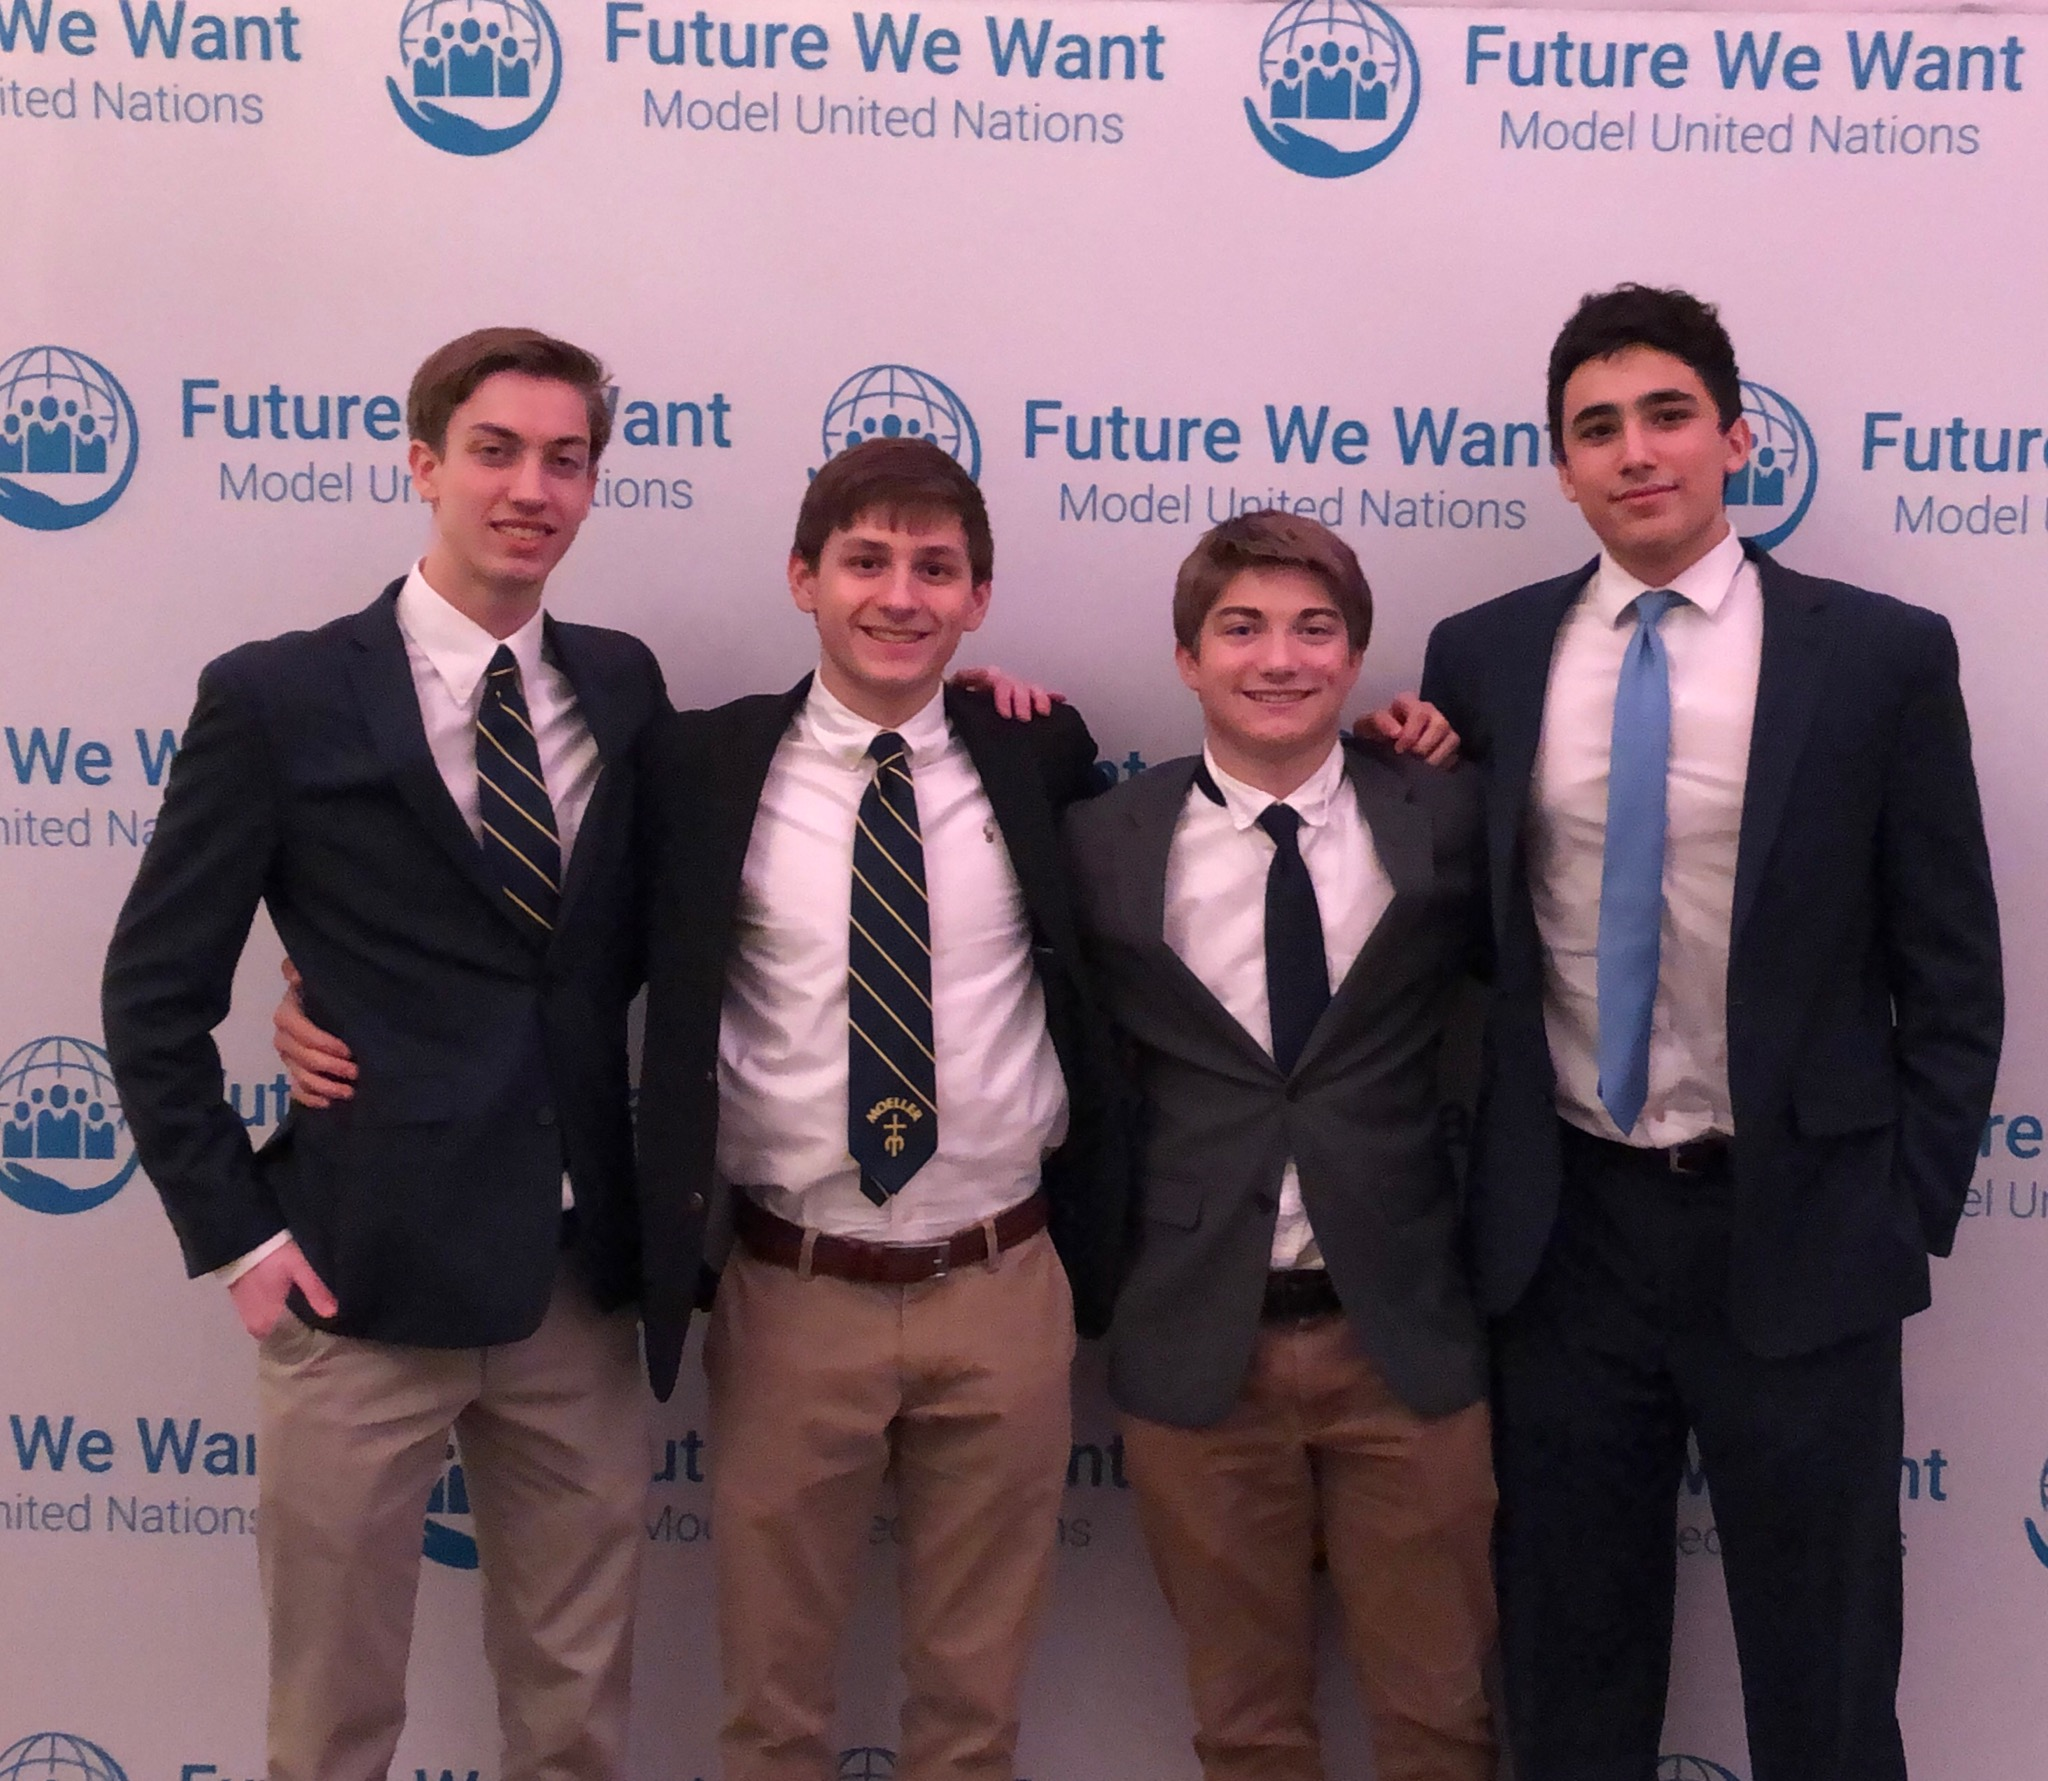 The Seniors who attended the FWWMUN Conference: (From the left: Jonathan Buck, Emerson Amongero, Greyson Wesley, Daniel Chaves) (Photo Credit: Jennifer Boggess)